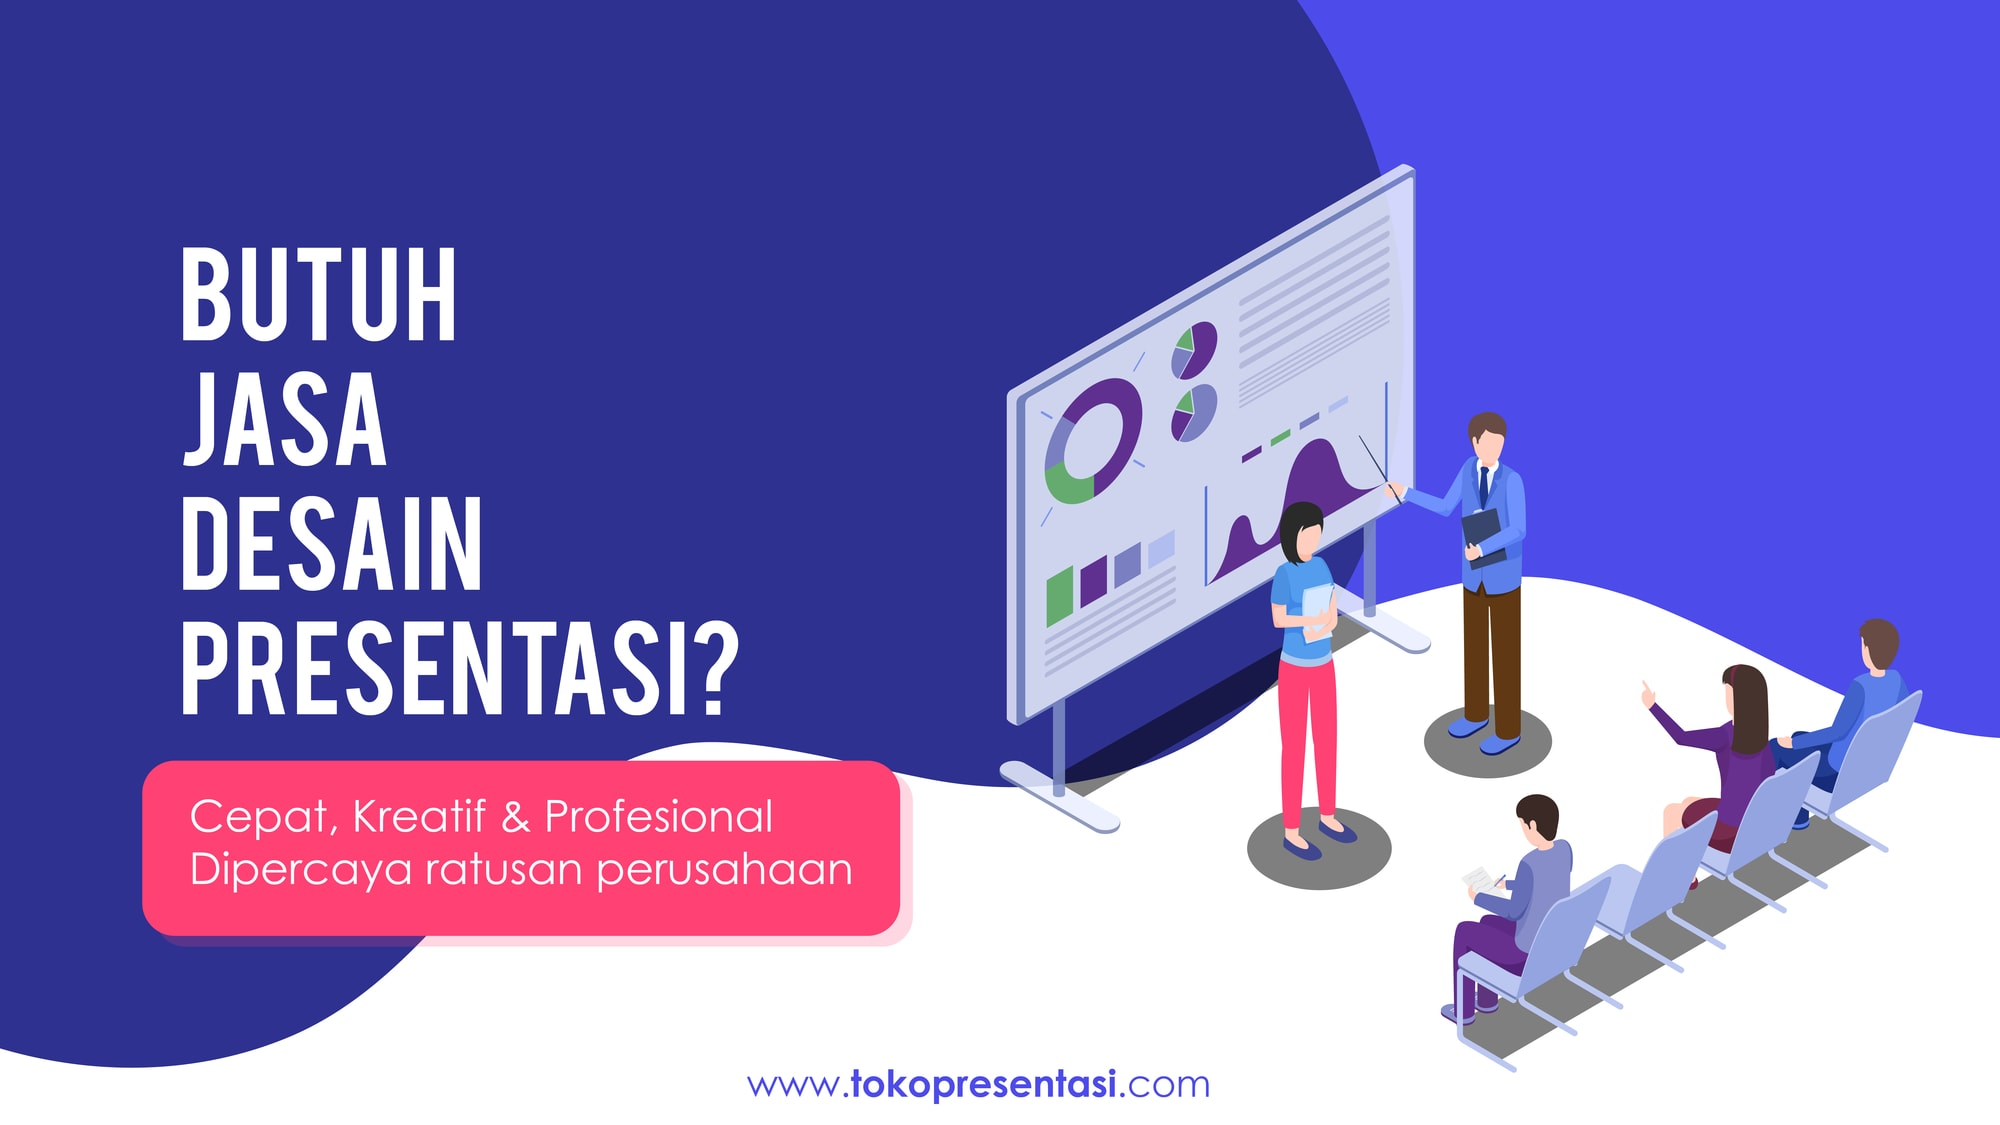 Jasa-desain-powerpoint-press conference-Tokopresentasi